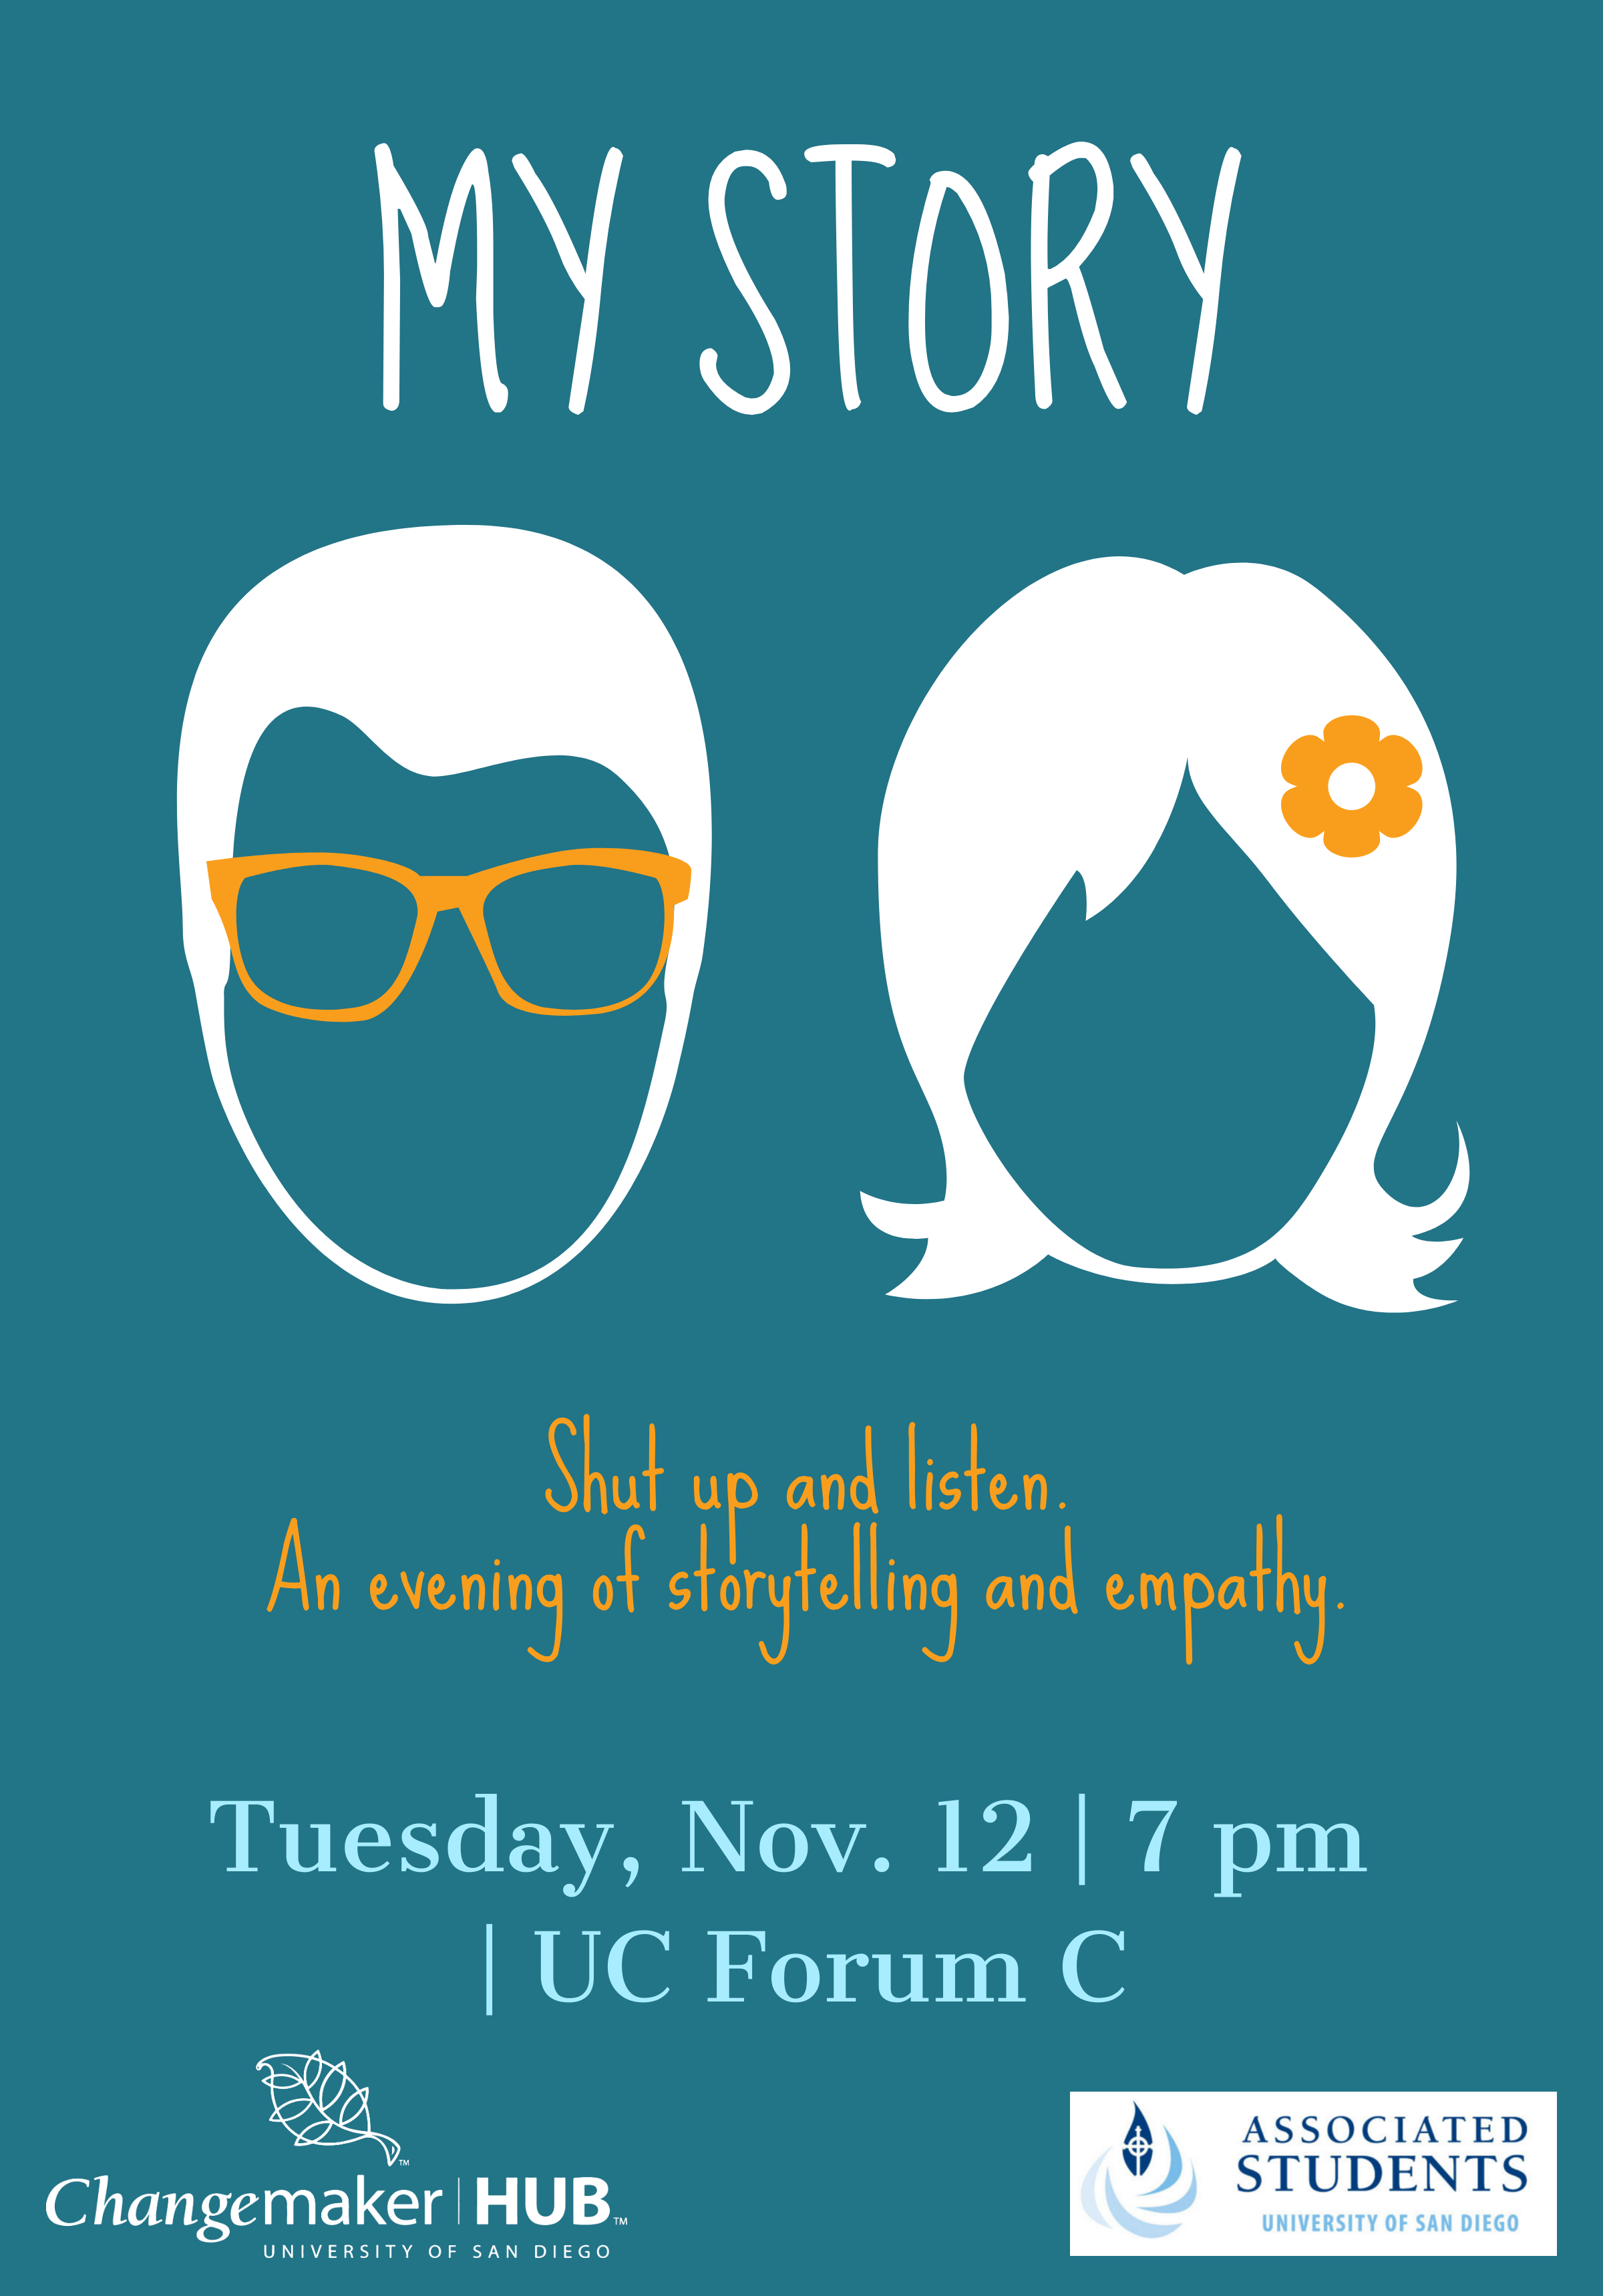 image of two silhouettes a man and a woman, info event Nov 12 7pm